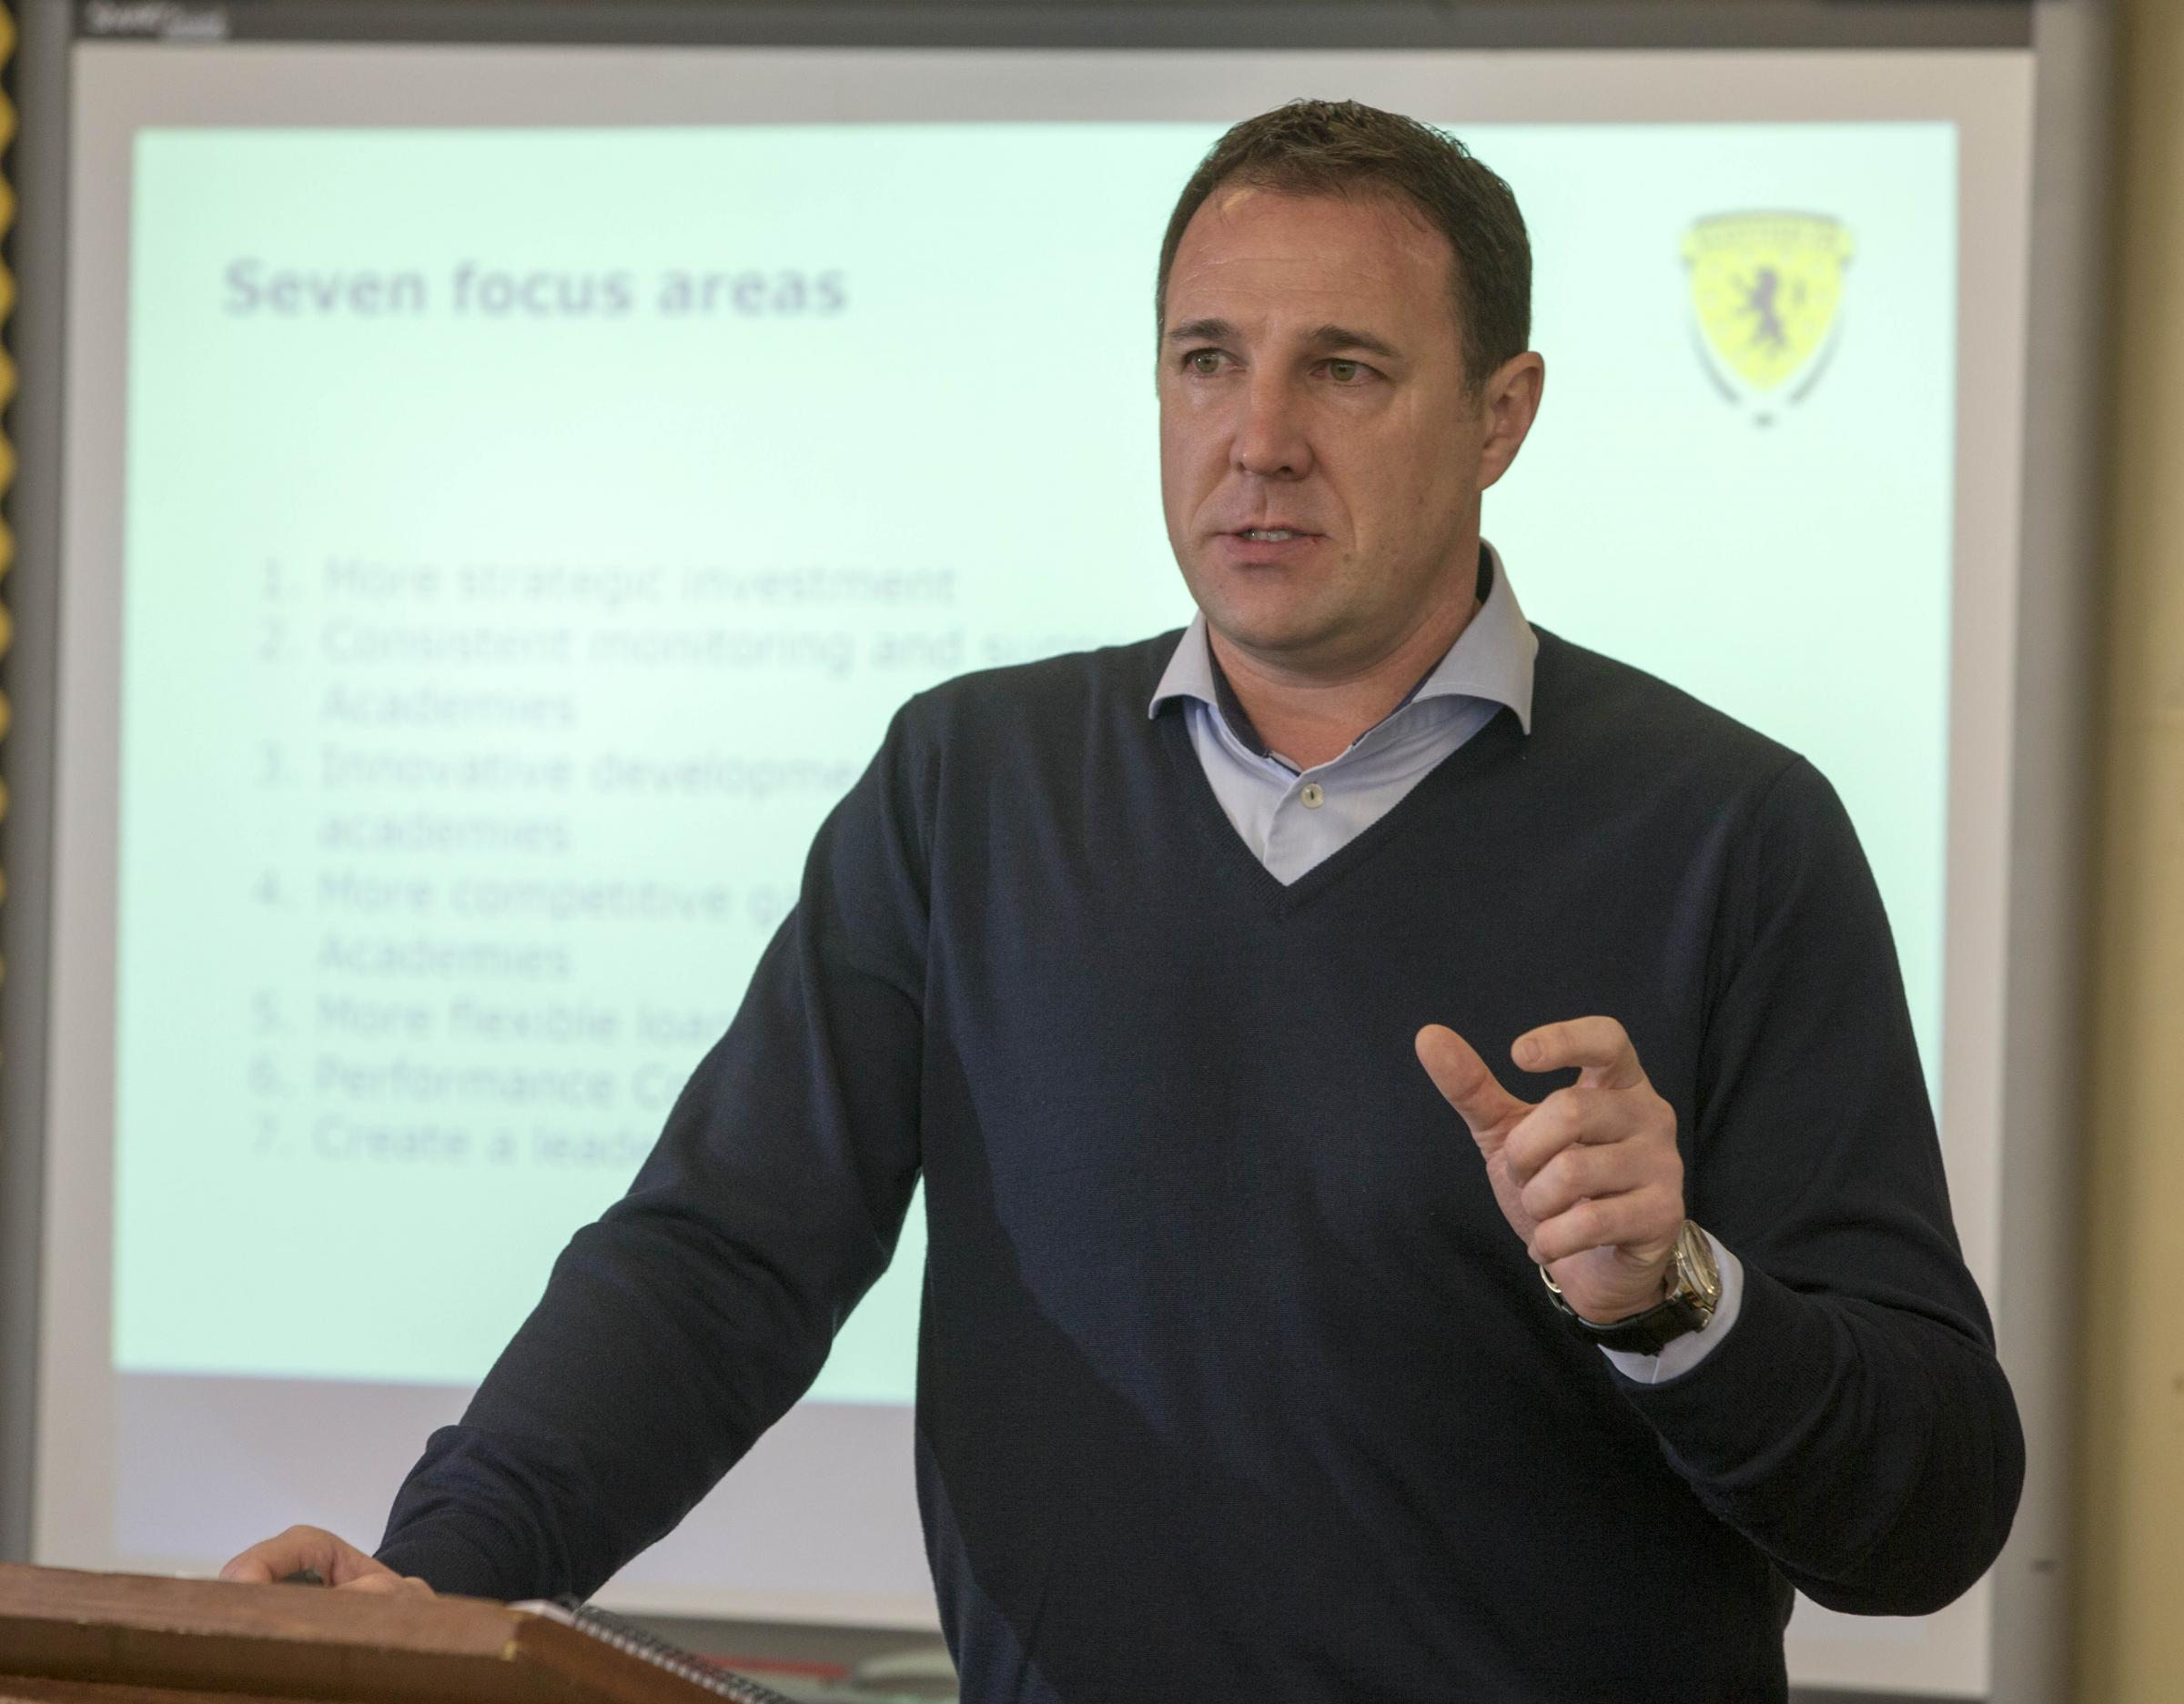 Malky Mackay enlists the help of Celtic manager Brendan Rodgers in fight to halt the decline of Scottish football